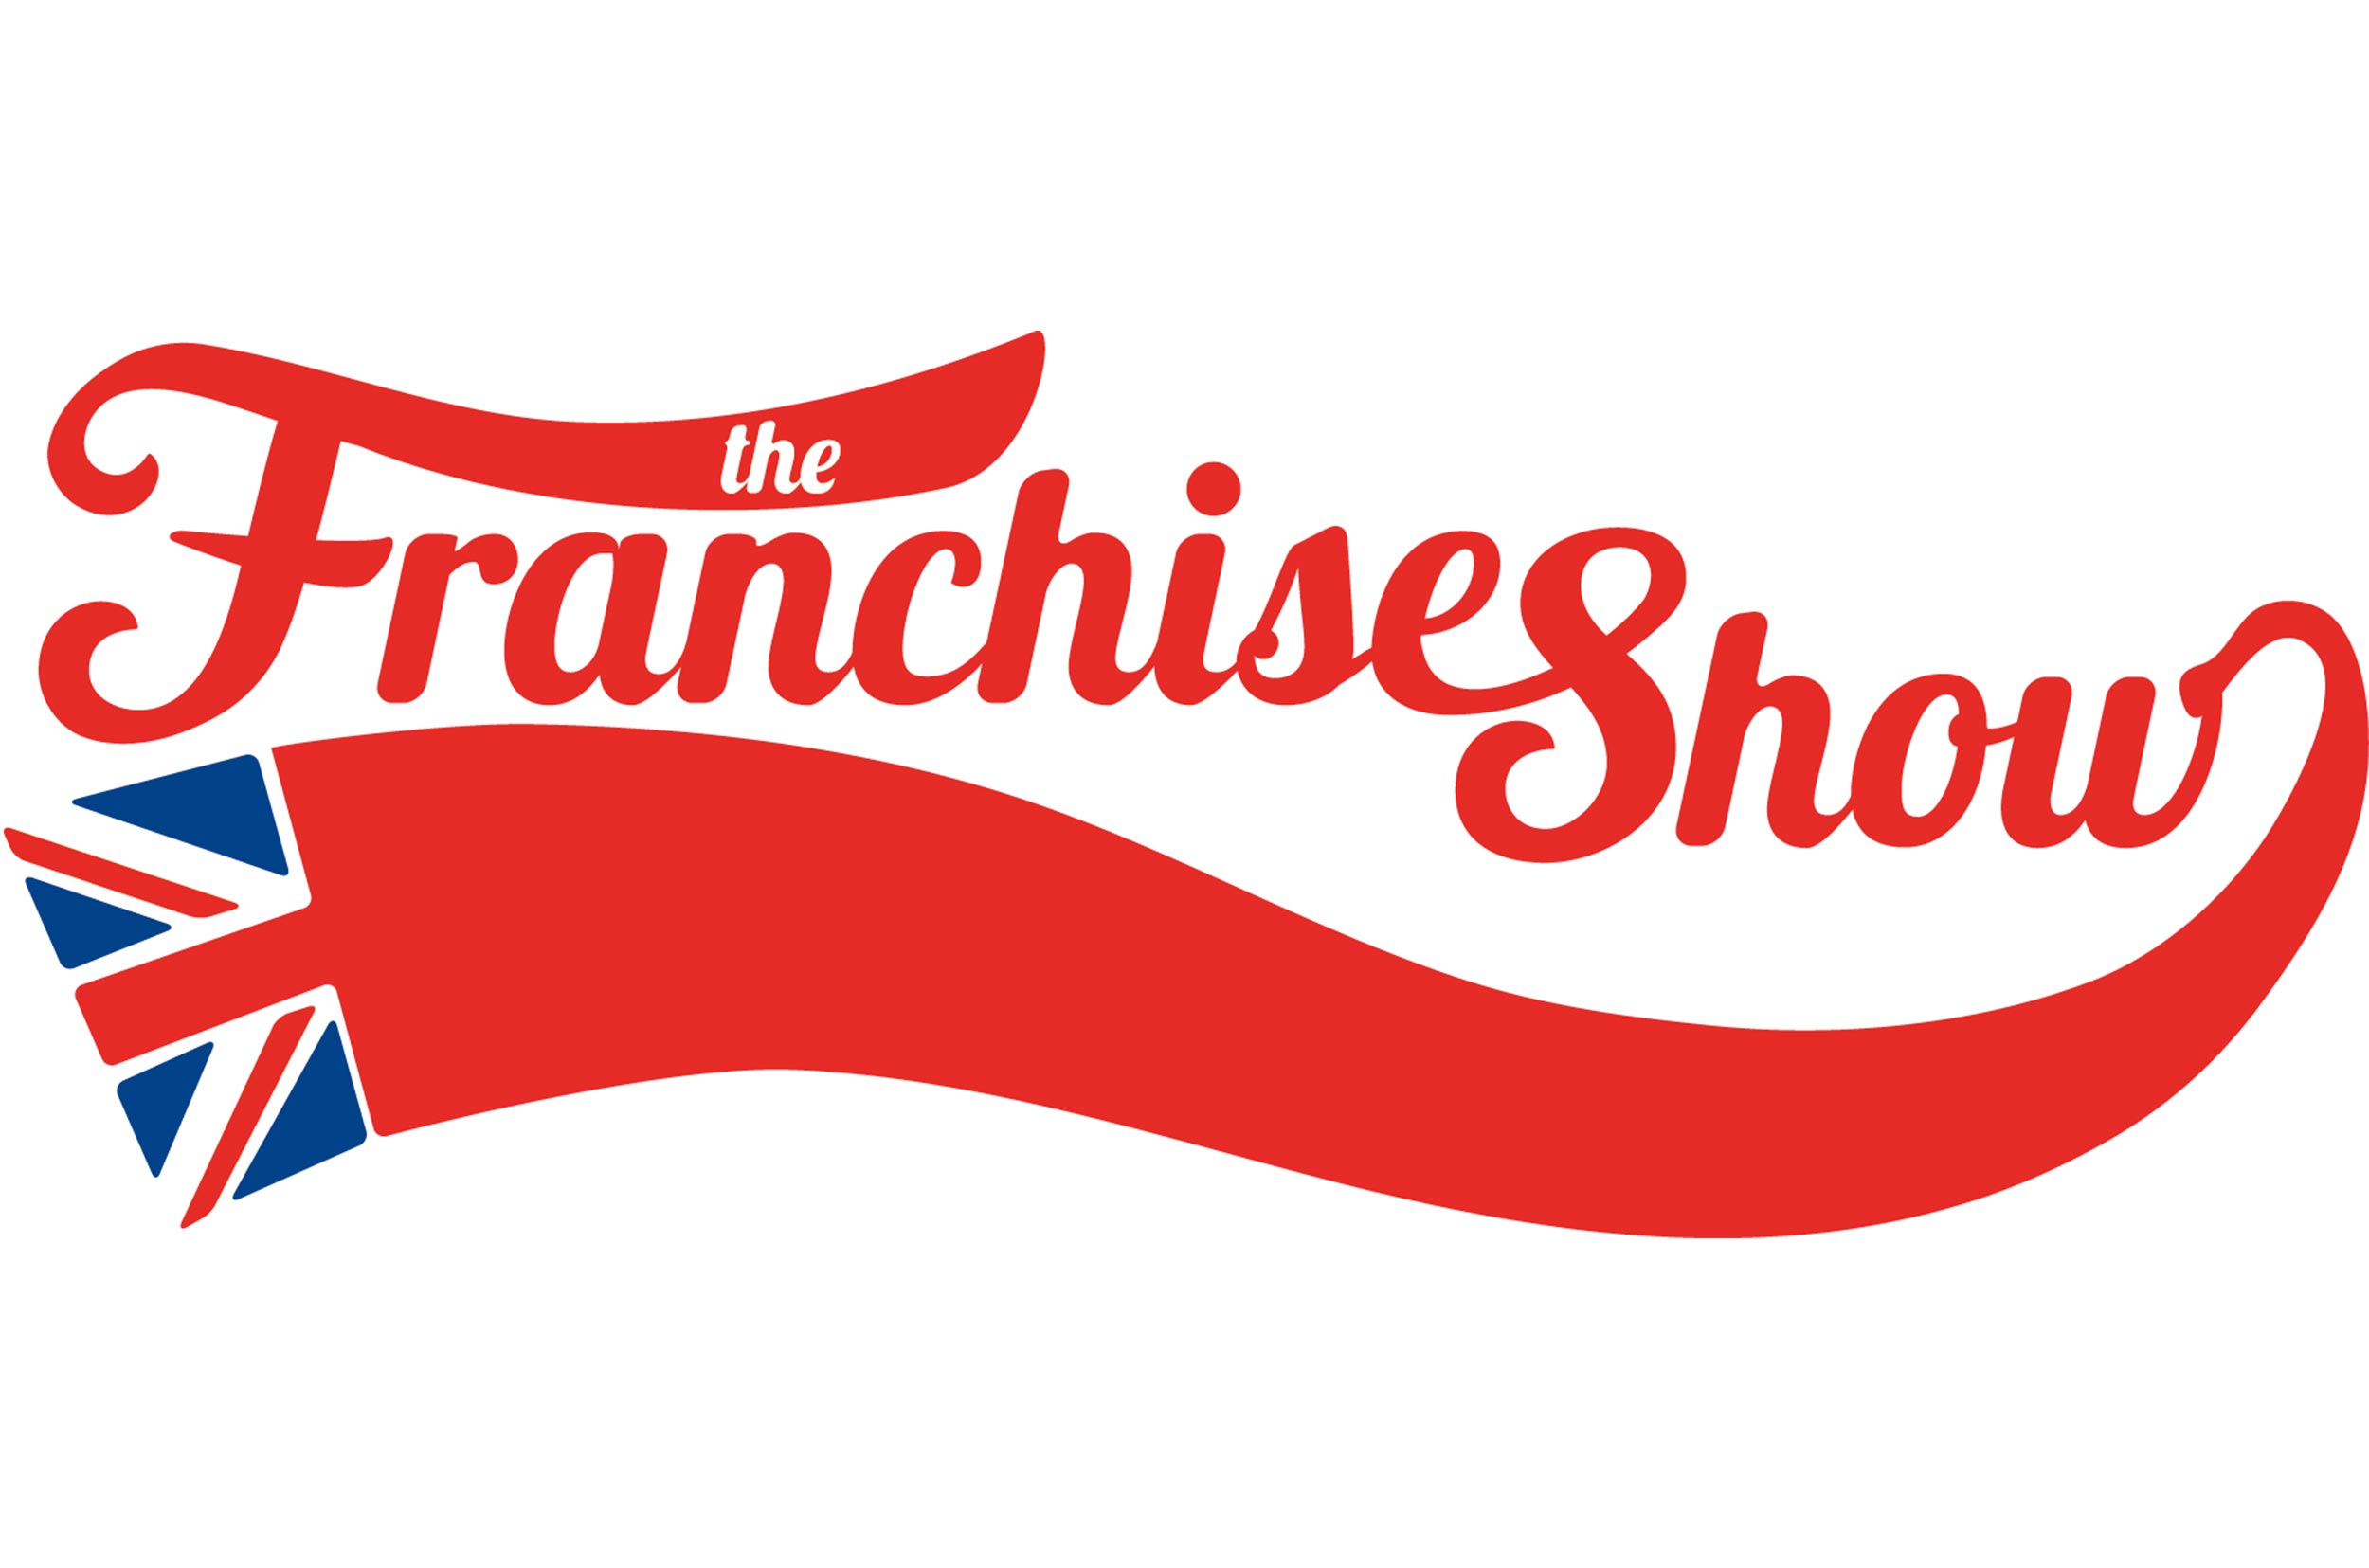 The Franchise Show 2018